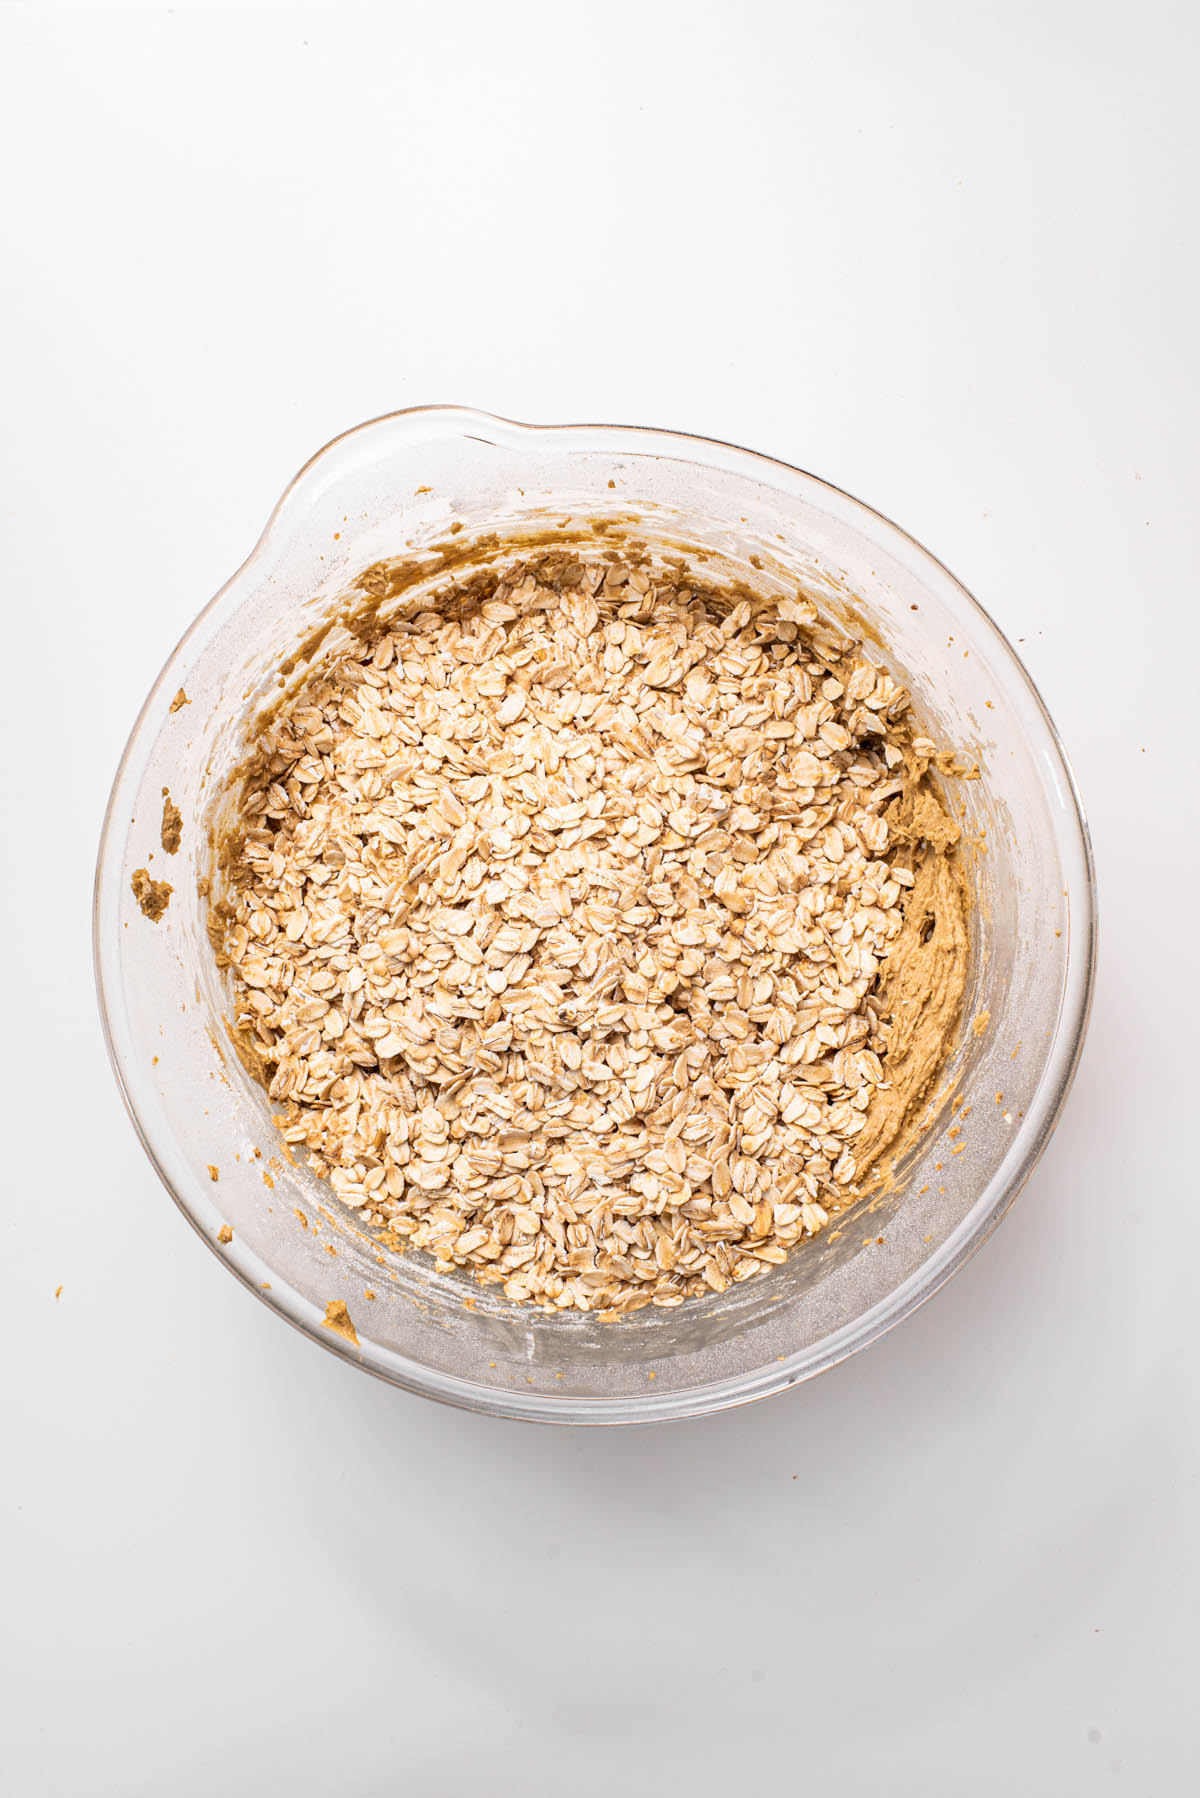 Rolled oats added to the mixing bowl.